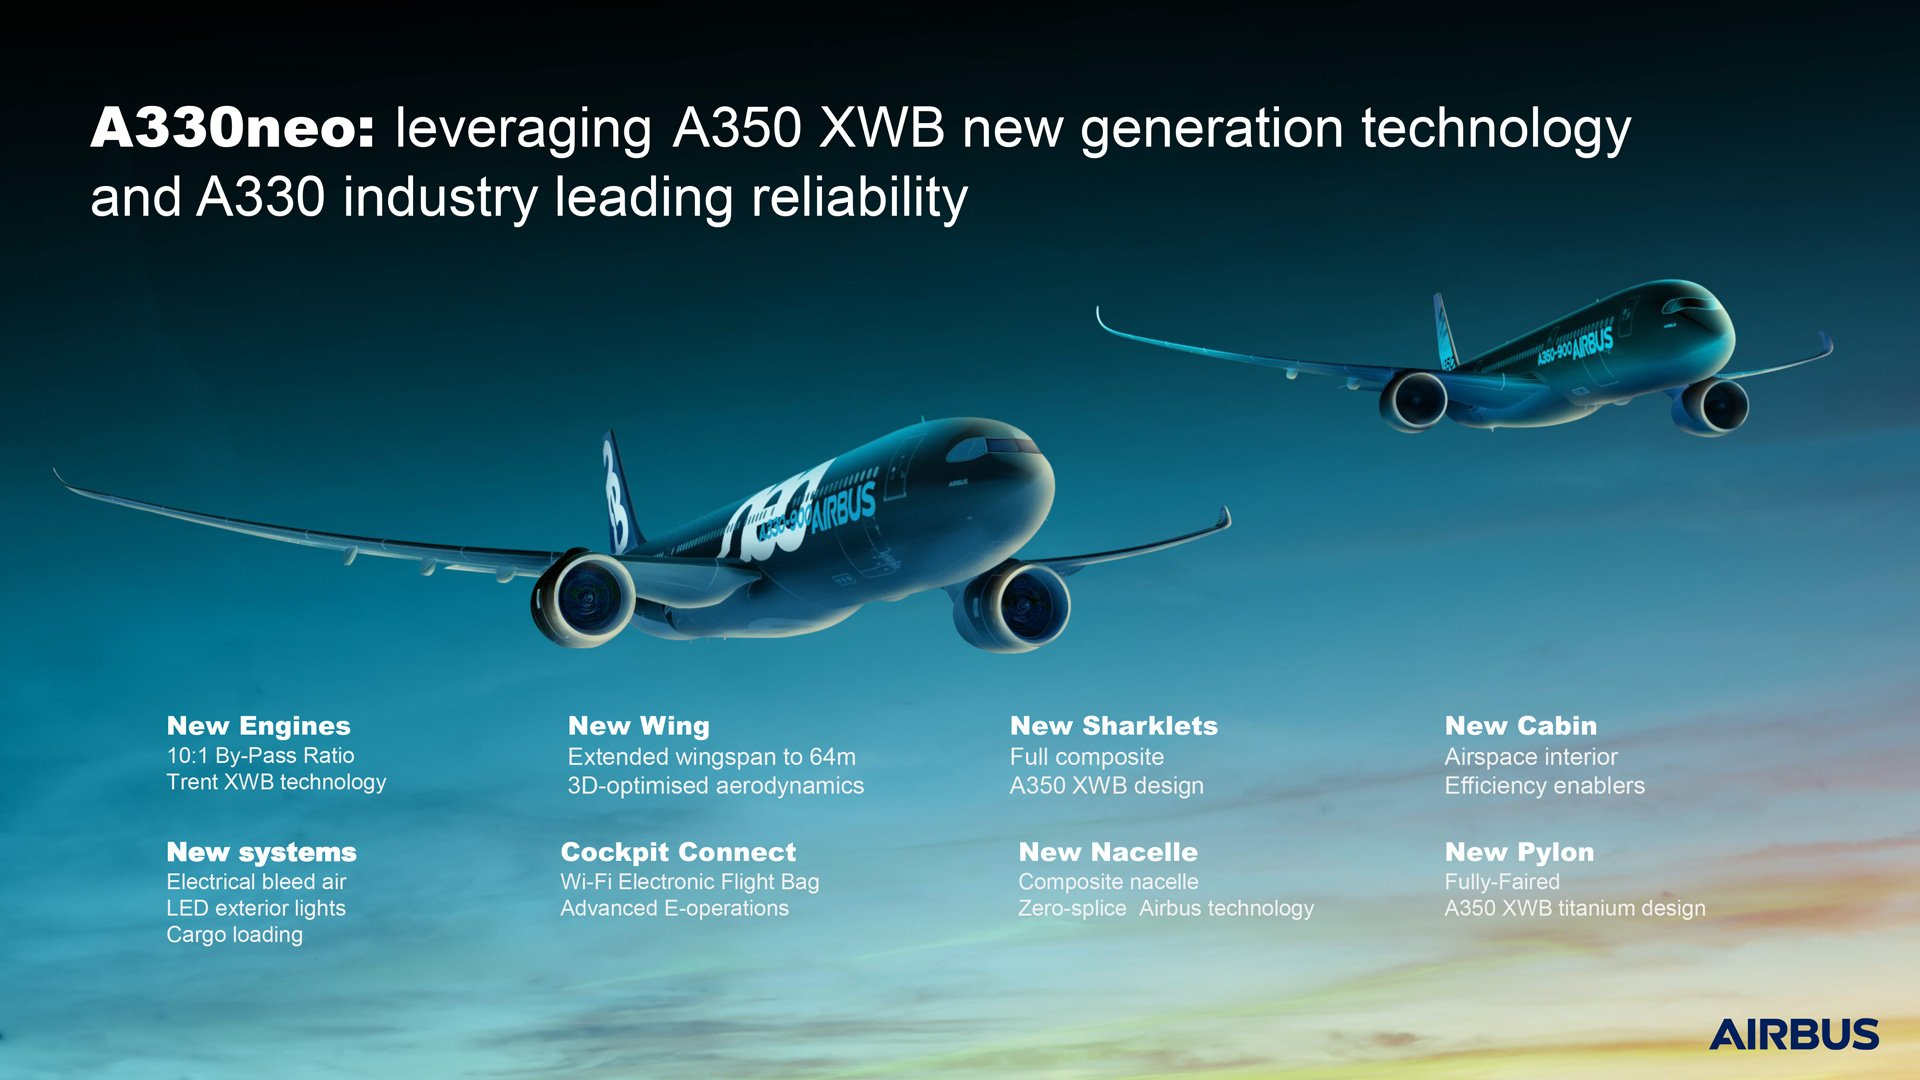 A330neo A350XWB Commonality Infographic